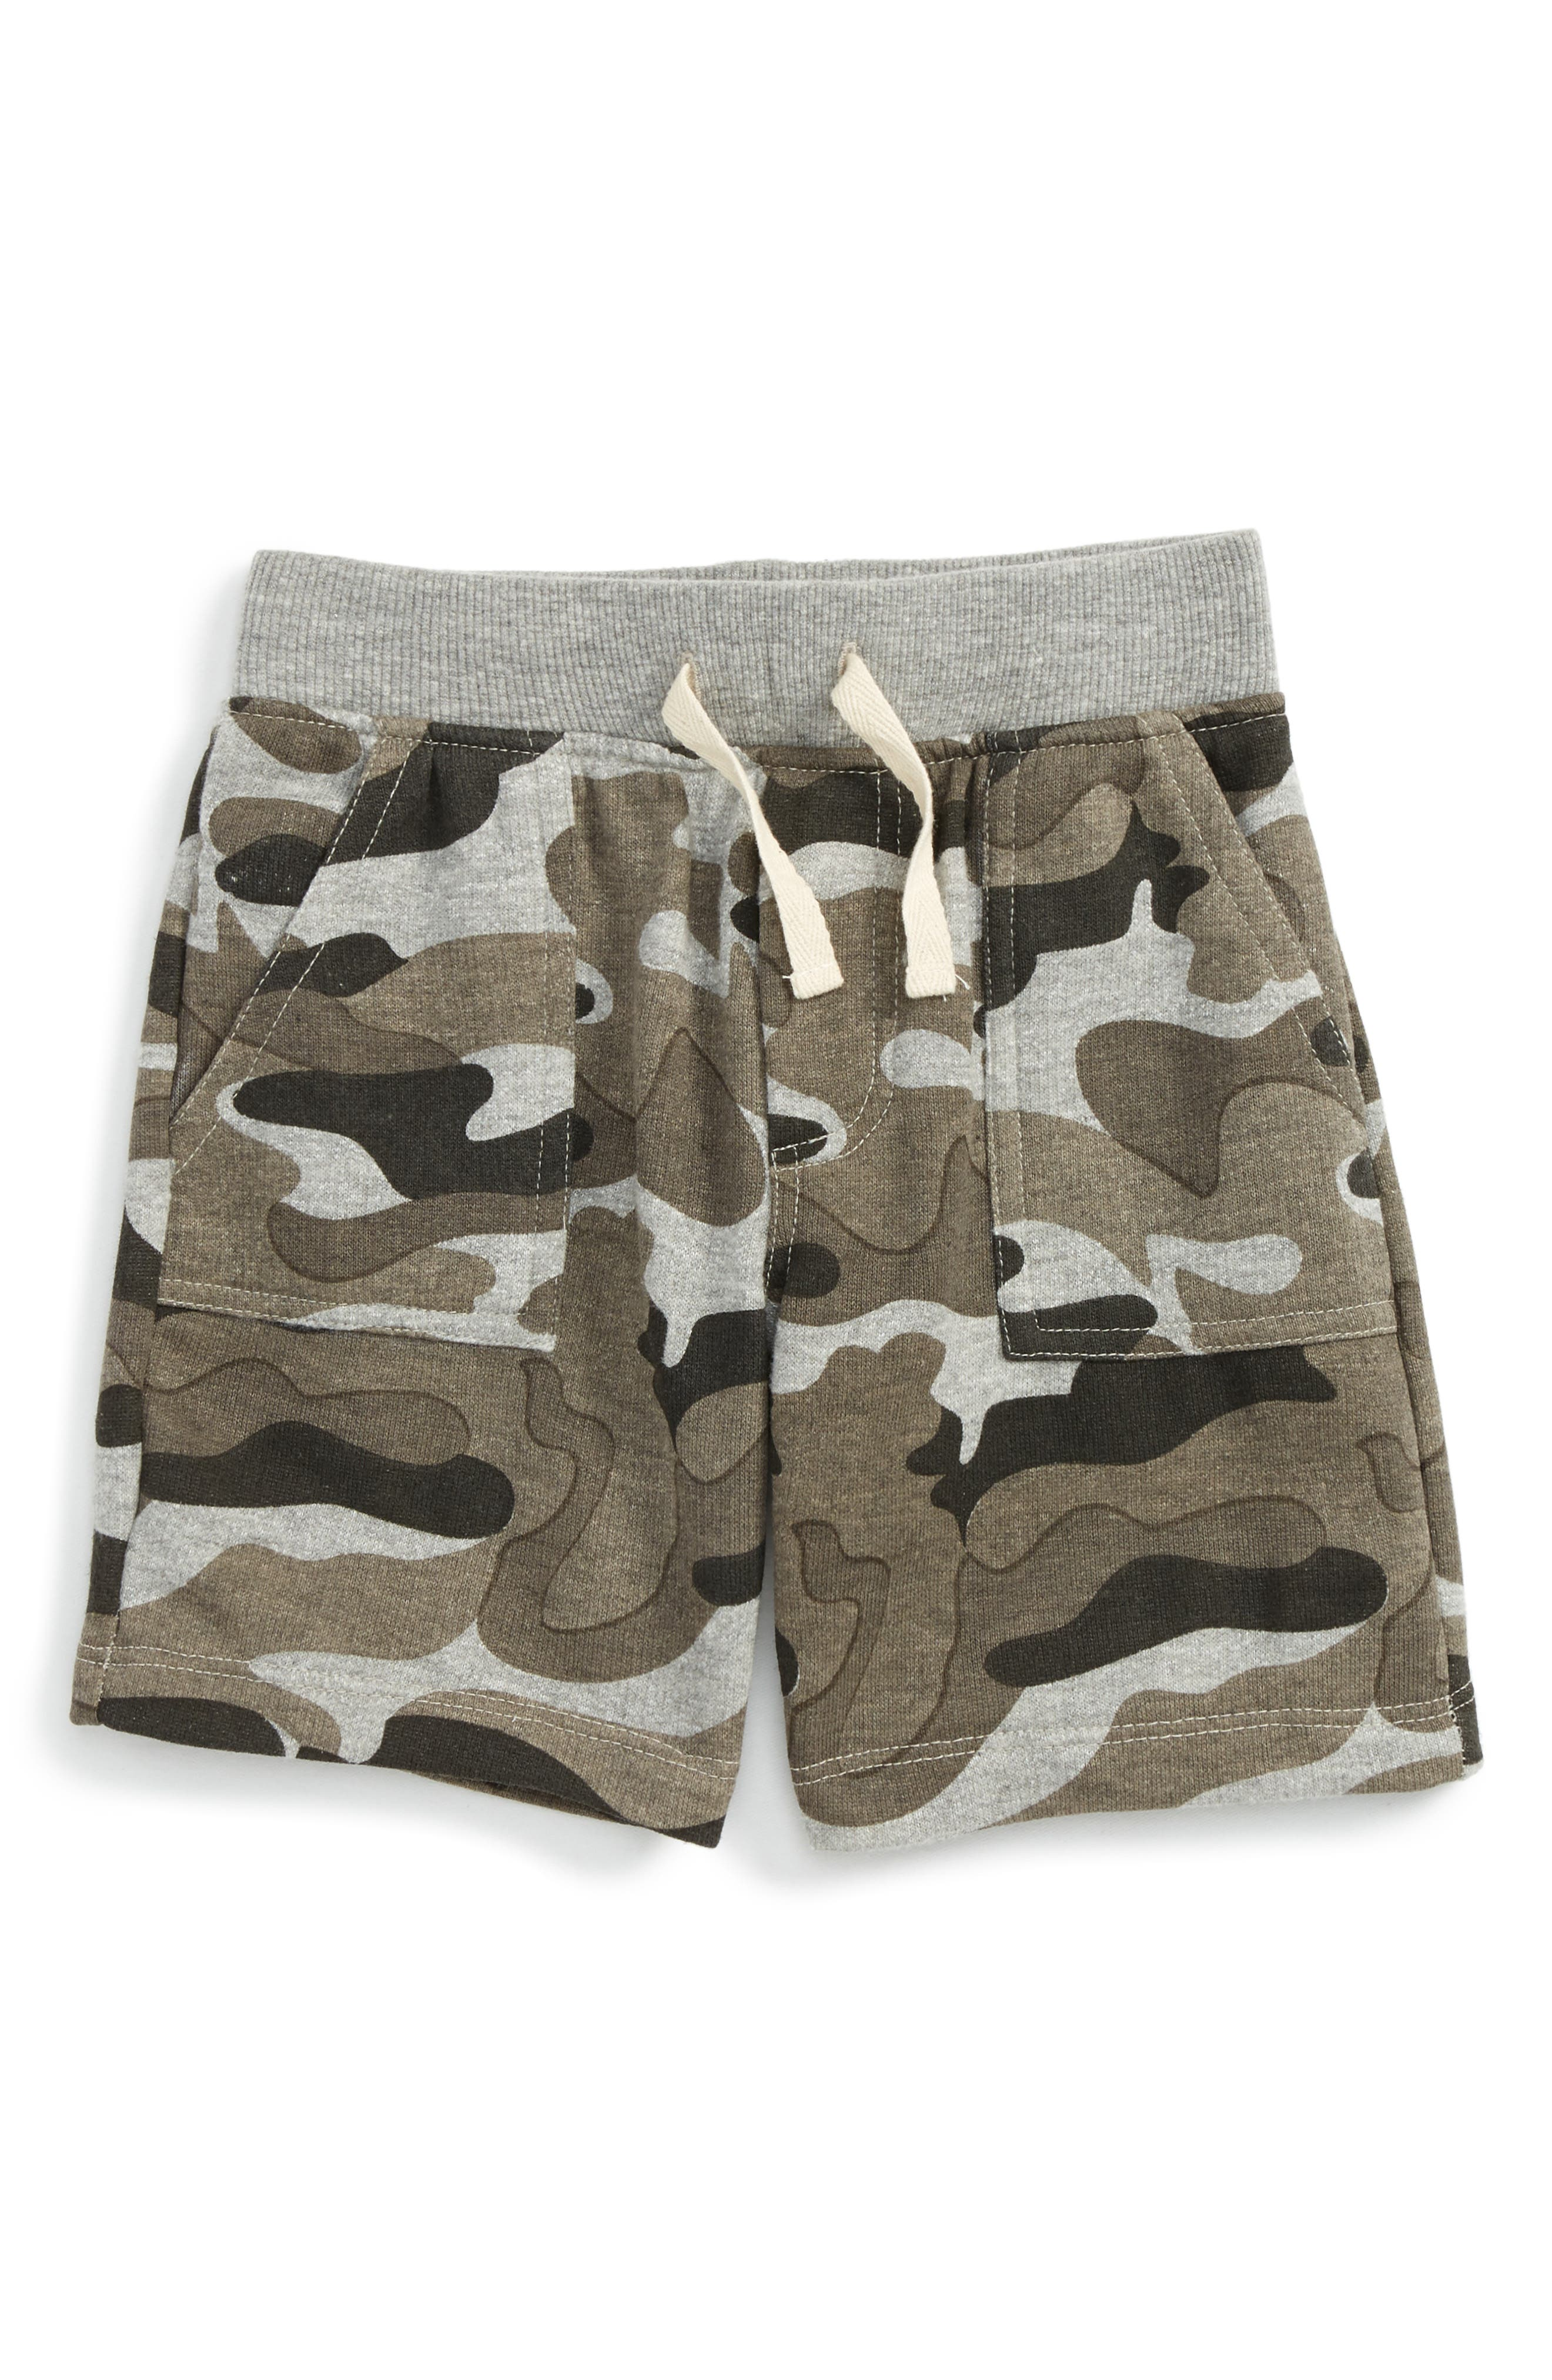 Stephen Camo Shorts,                         Main,                         color, Grey Camo